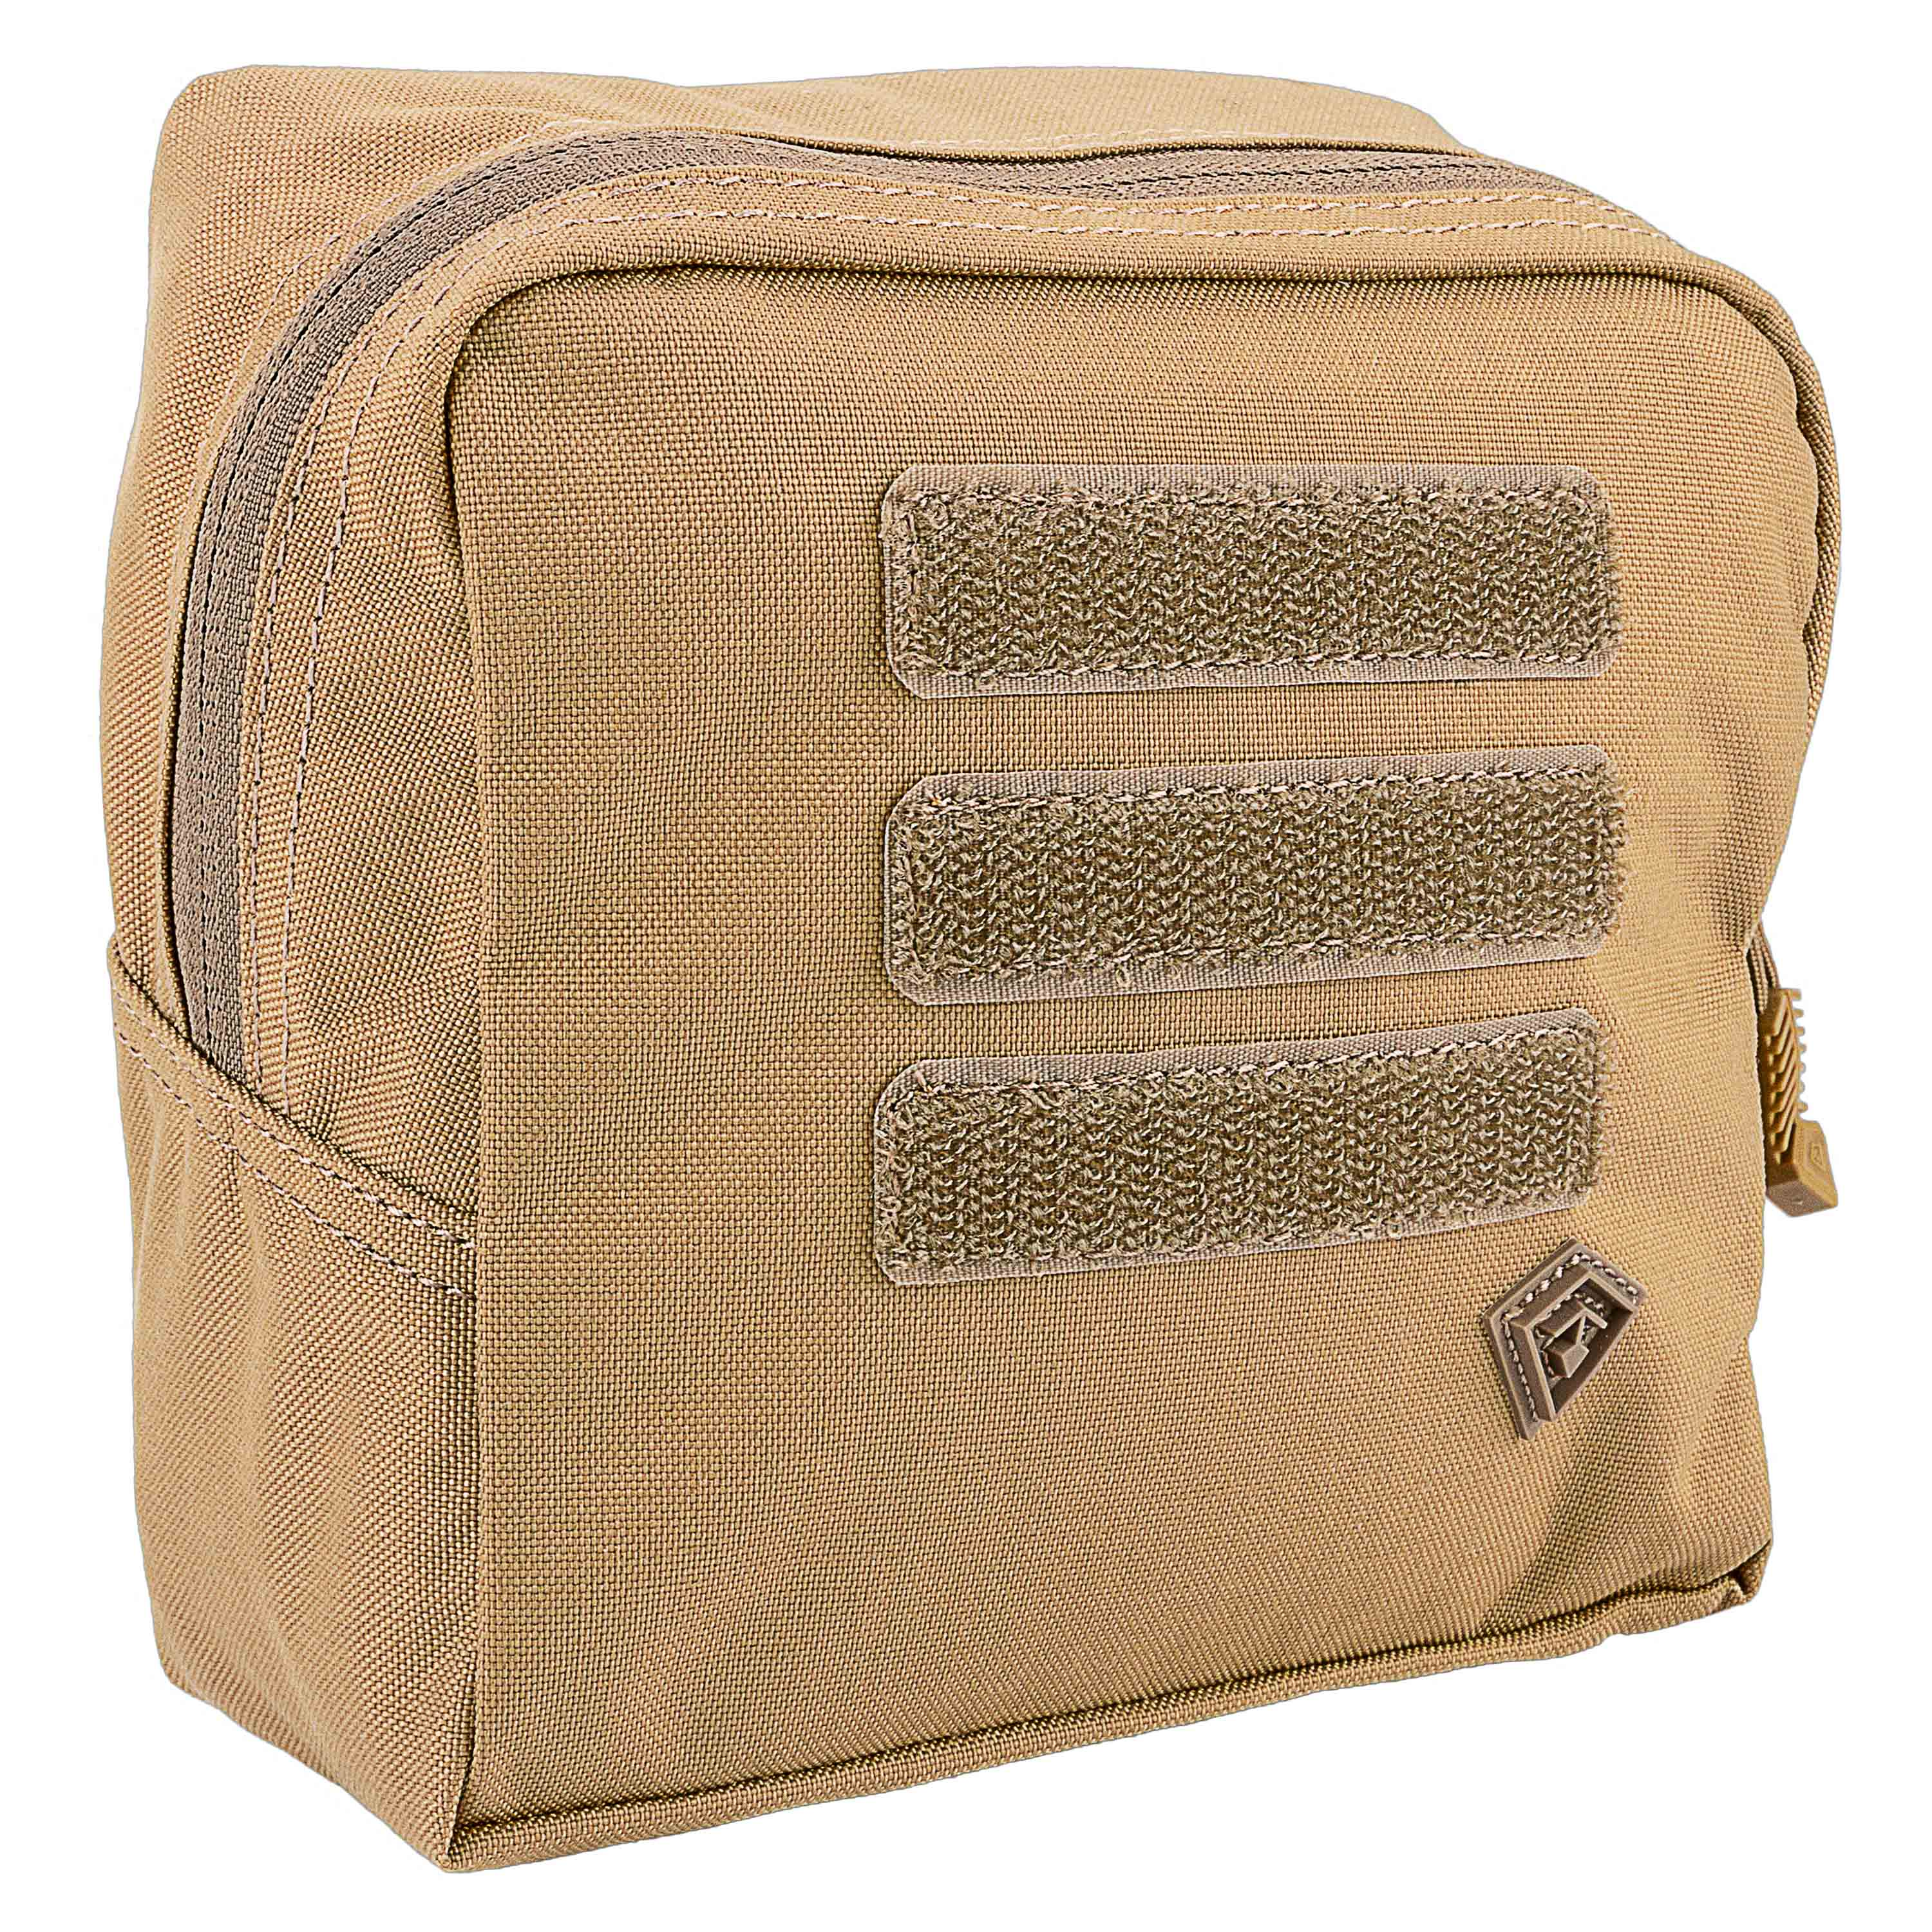 First Tactical Tasche Tactix Utility Pouch 6 x 6 coyote